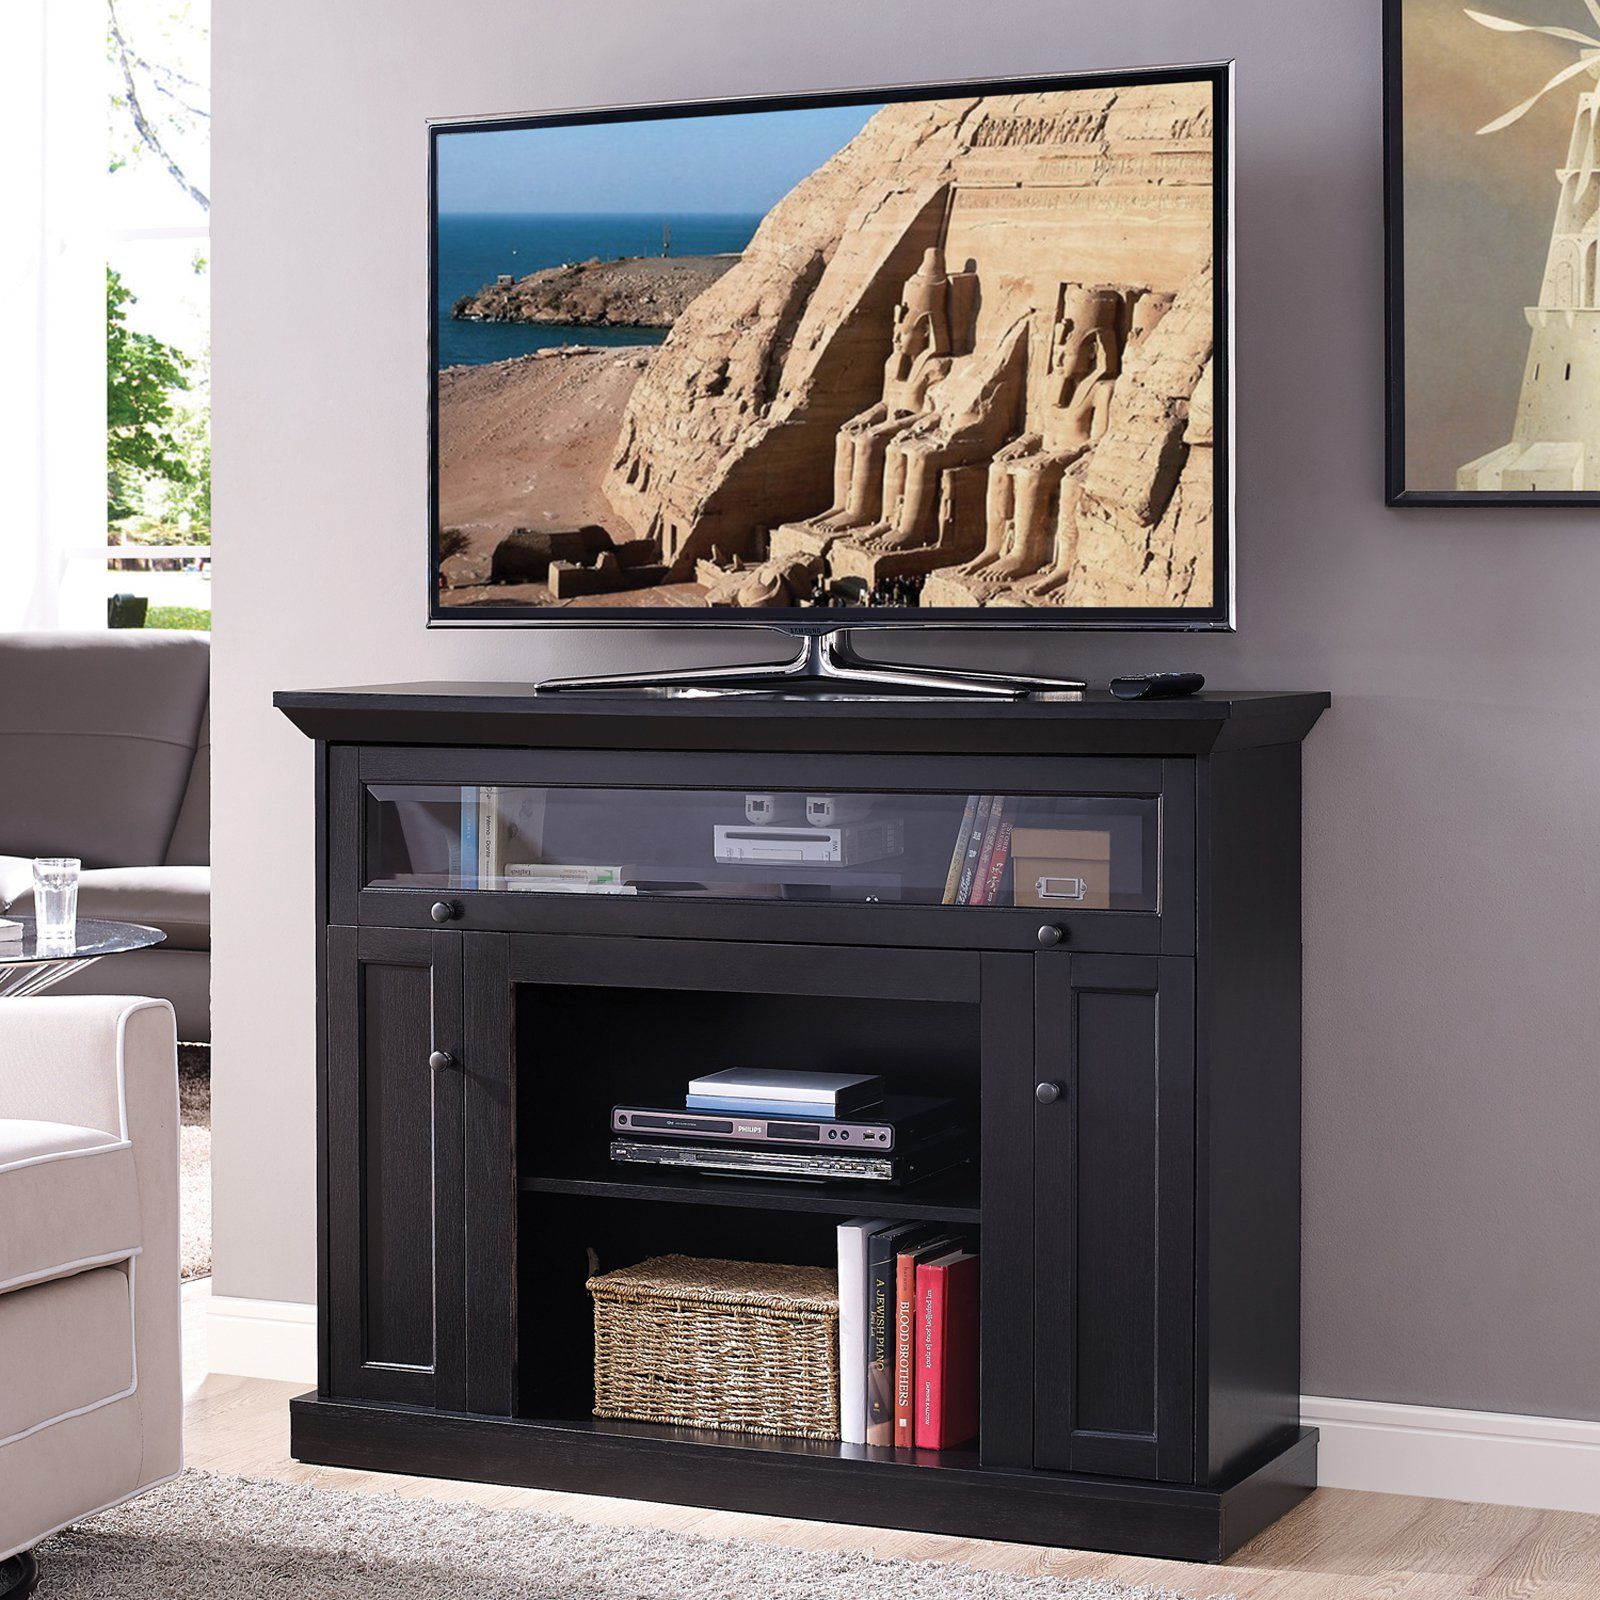 Home Source Industries 46 In Wood Tv Stand Espresso Tv Stand